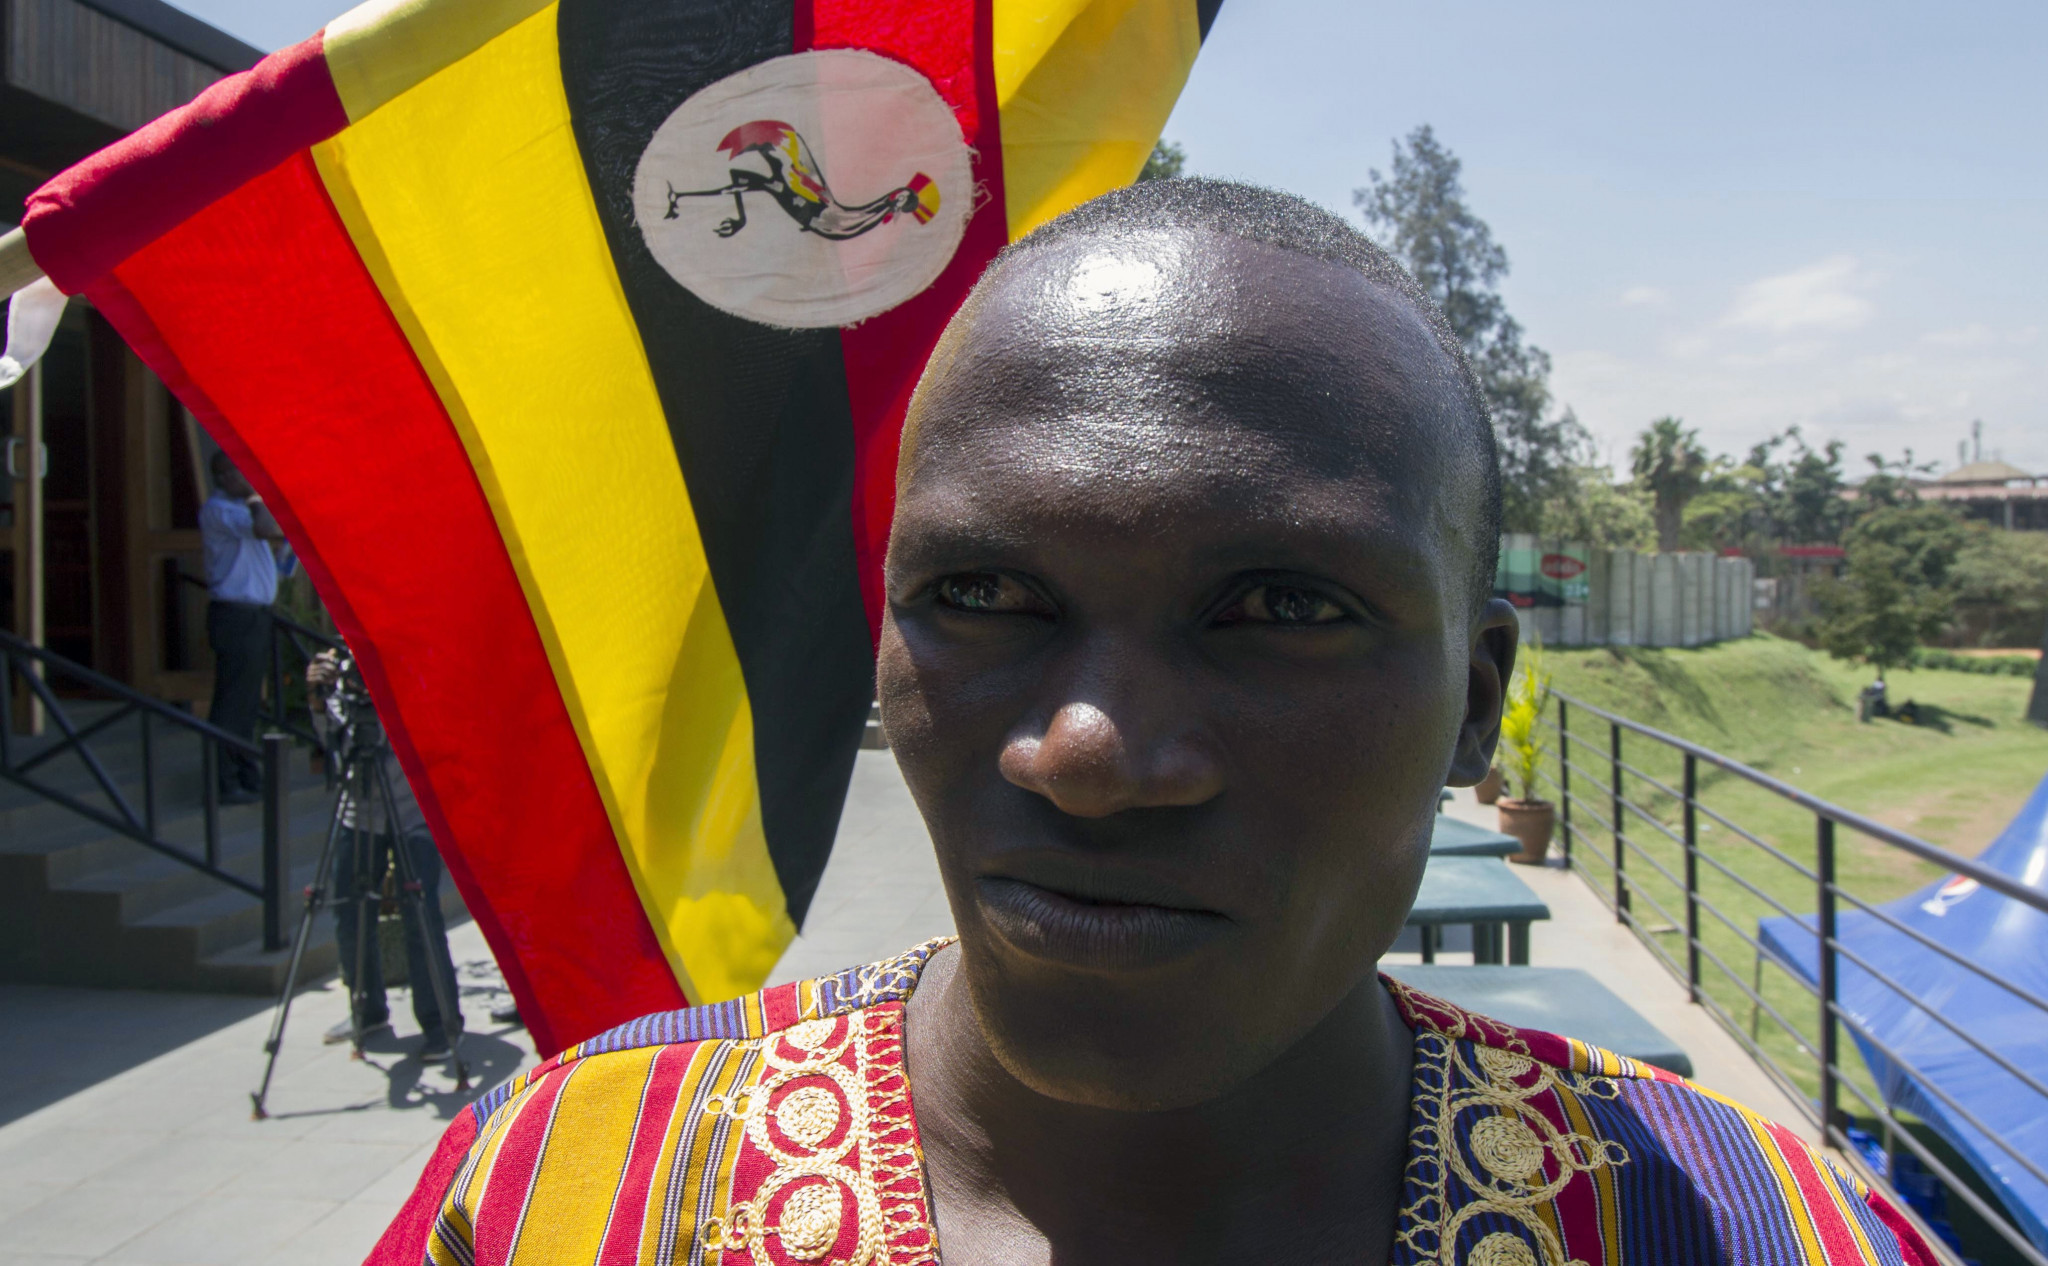 Stephen Kiprotich will not appear at Gold Coast 2018 ©Getty Images